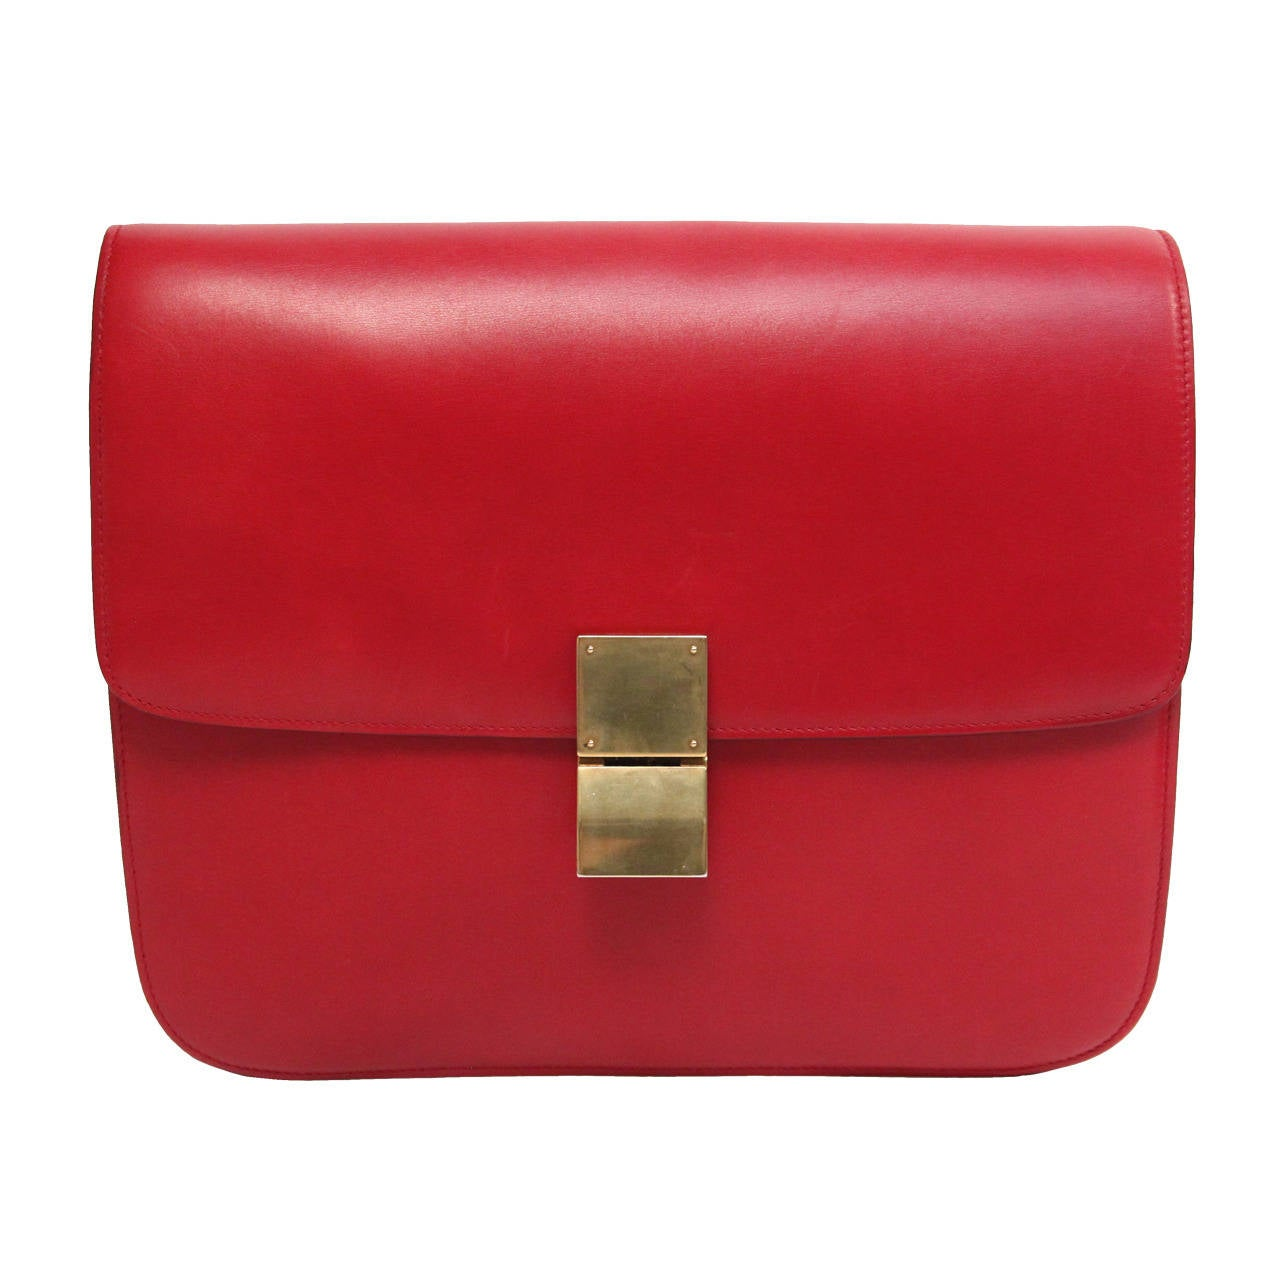 Celine large red classic box leather bag with convertible strap  For Sale